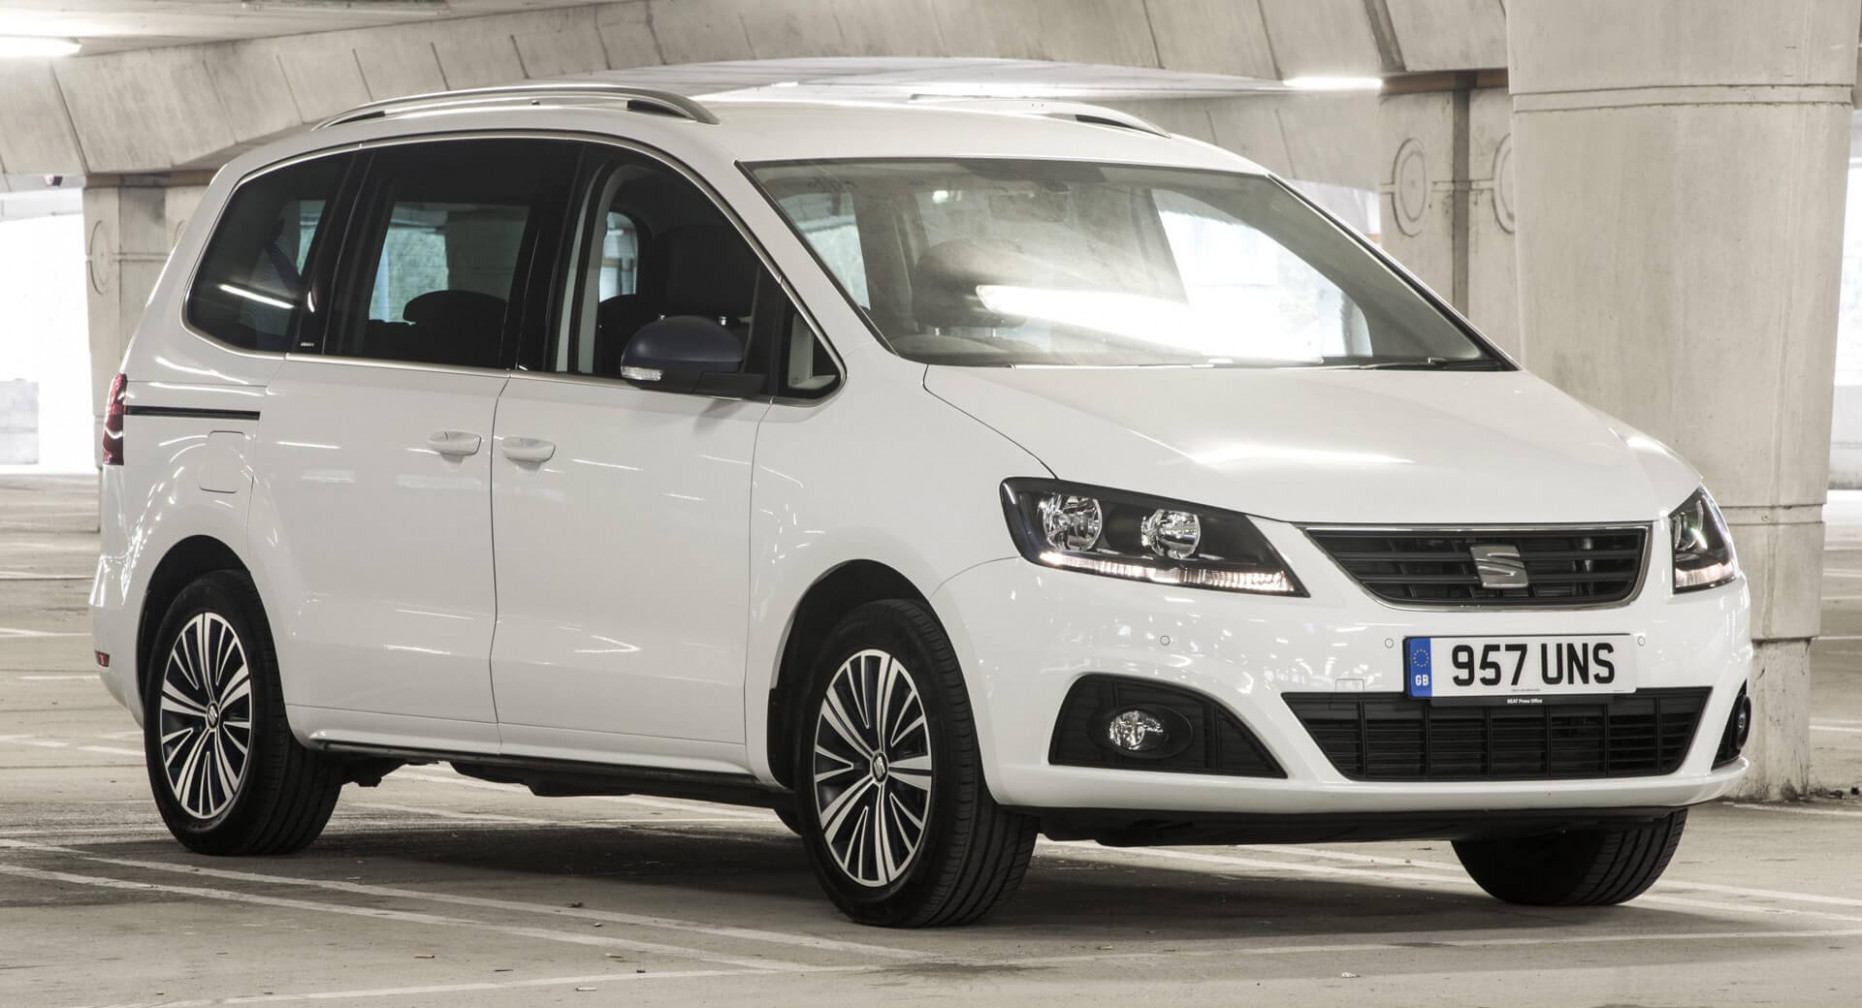 Picture 2022 Seat Alhambra